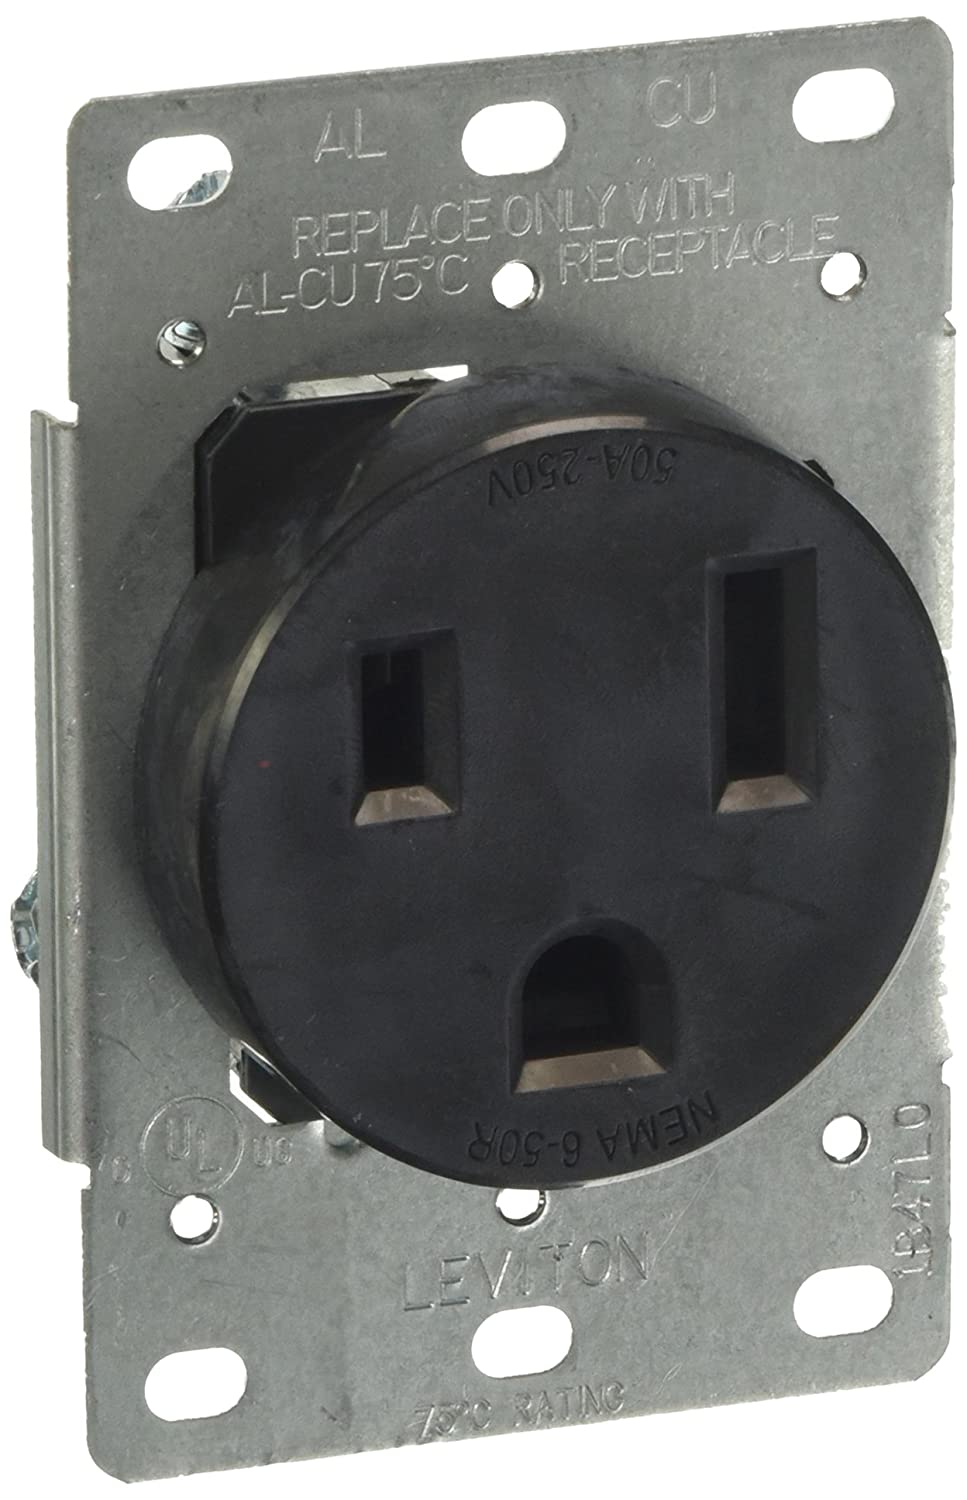 Leviton 5374-S00 50 Amp, 250 Volt, Flush Mounting Receptacle, Straight Blade, Industrial Grade, Grounding, Black, pack of 1,